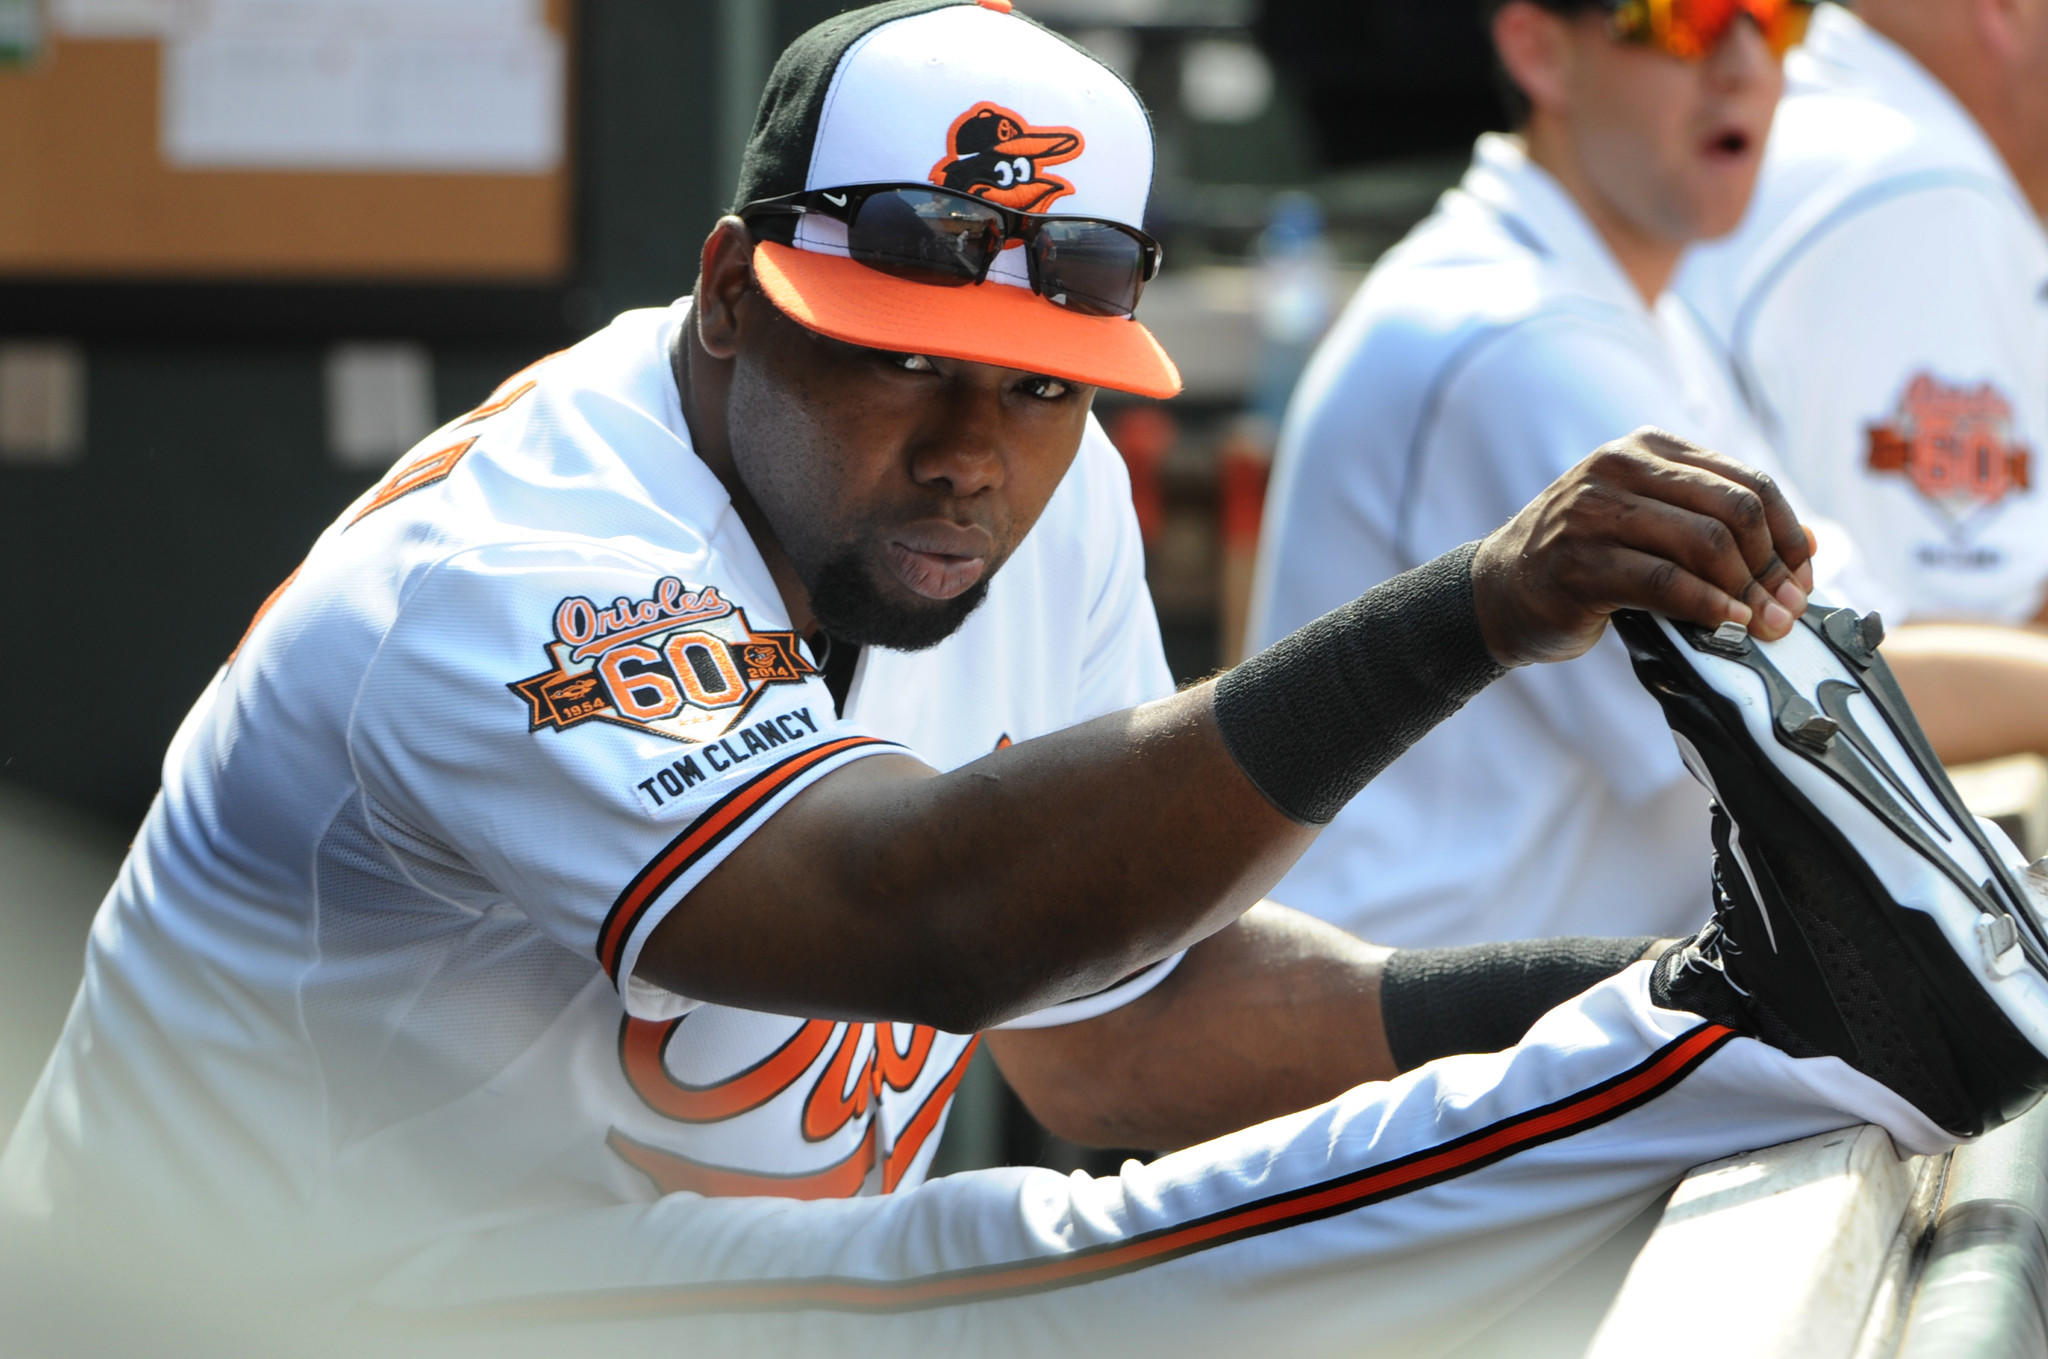 Alejandro De Aza and some other recent additions could give the Orioles a different dimension on the basepaths.